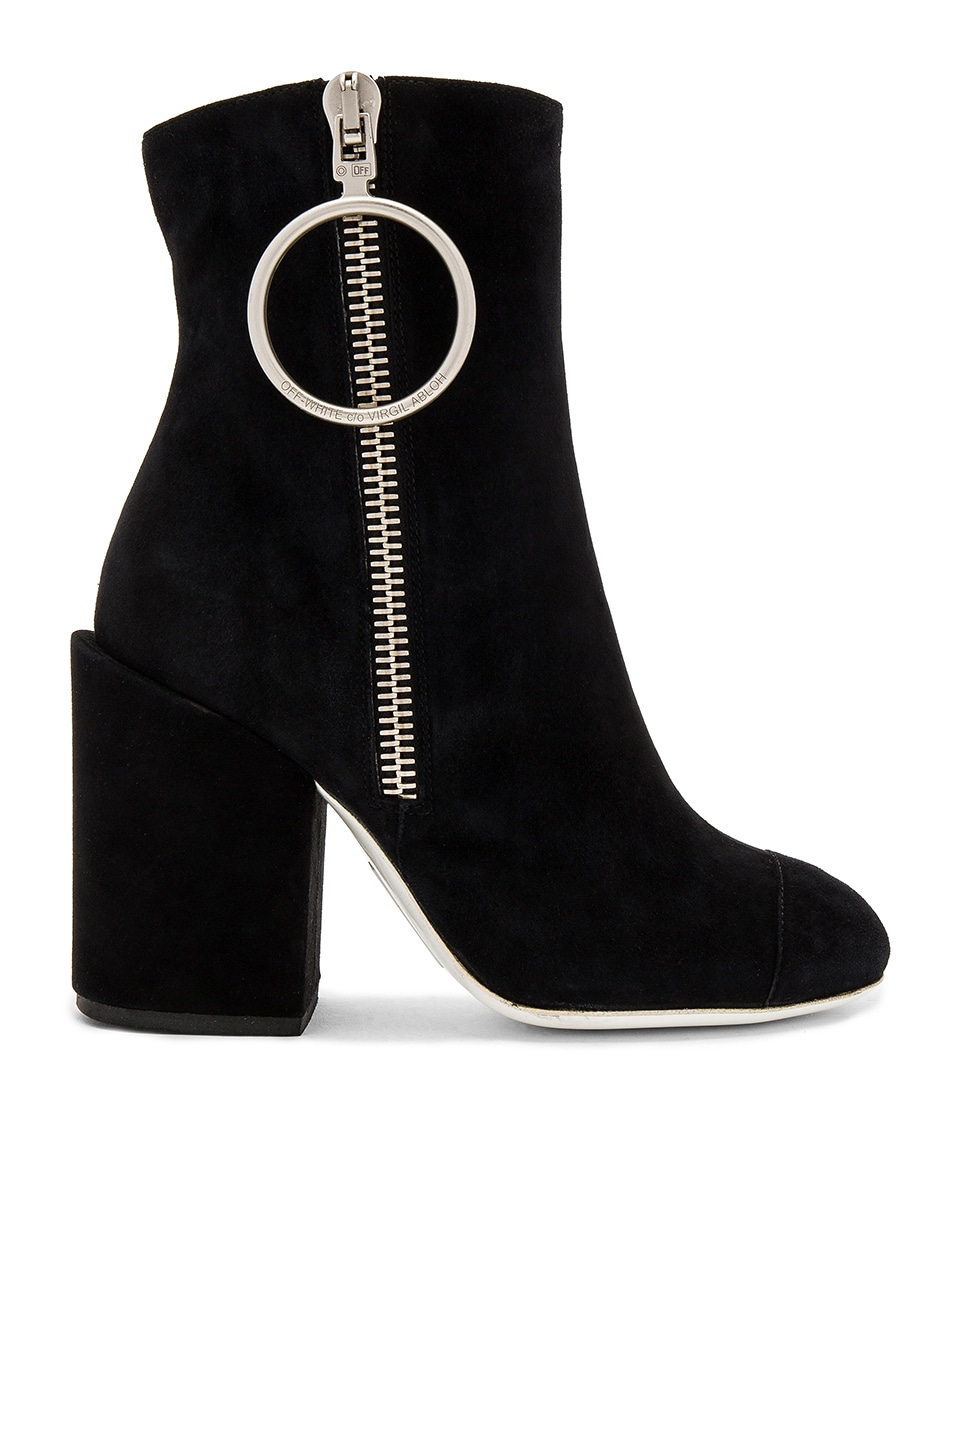 OFF-WHITE Suede Ankle Boots in Black